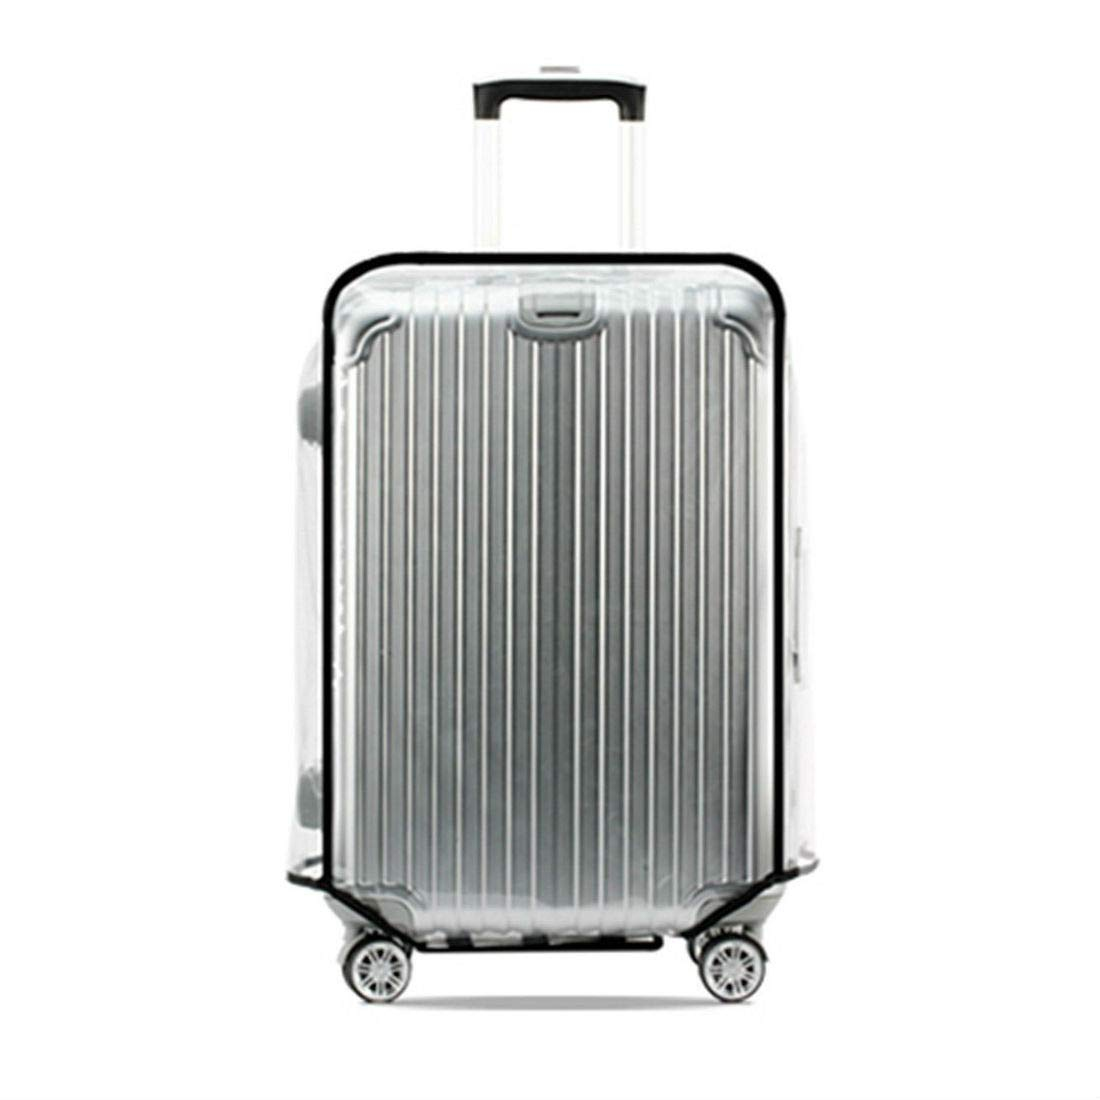 Waterproof Clear Transparent Luggage Suitcase Cover Case Protector Travel 20-28'' (24'') by Unknown